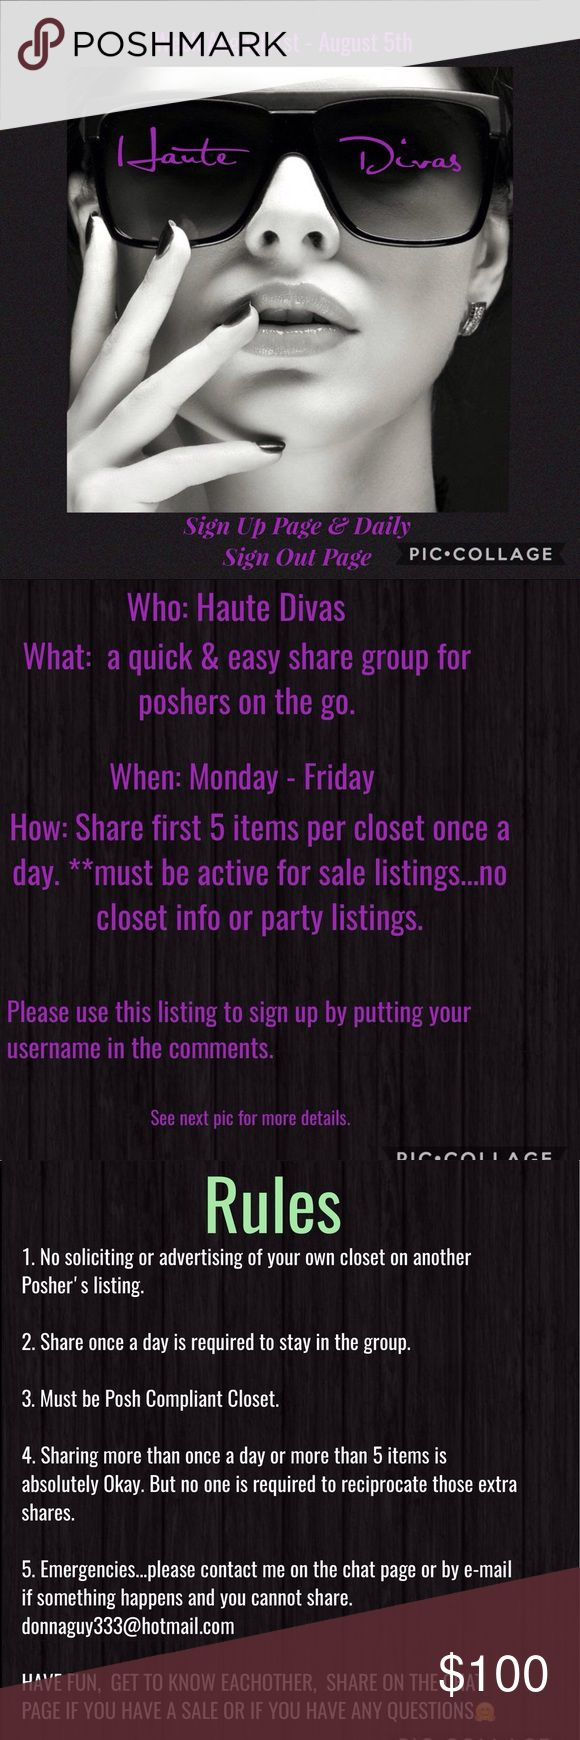 Haute Divas Share Group SIGN UPS extended to 10 am Haute Divas Share Group Sign Up page. Sign ups extended to 10 am Eastern Standard Time Zone Monday August 1st. Please sign up by putting your username in the comments. Must be Poshmark Compliant Closet. Please read pics & let me know if you have any questions. Thank you. Donna Anthropologie Tops